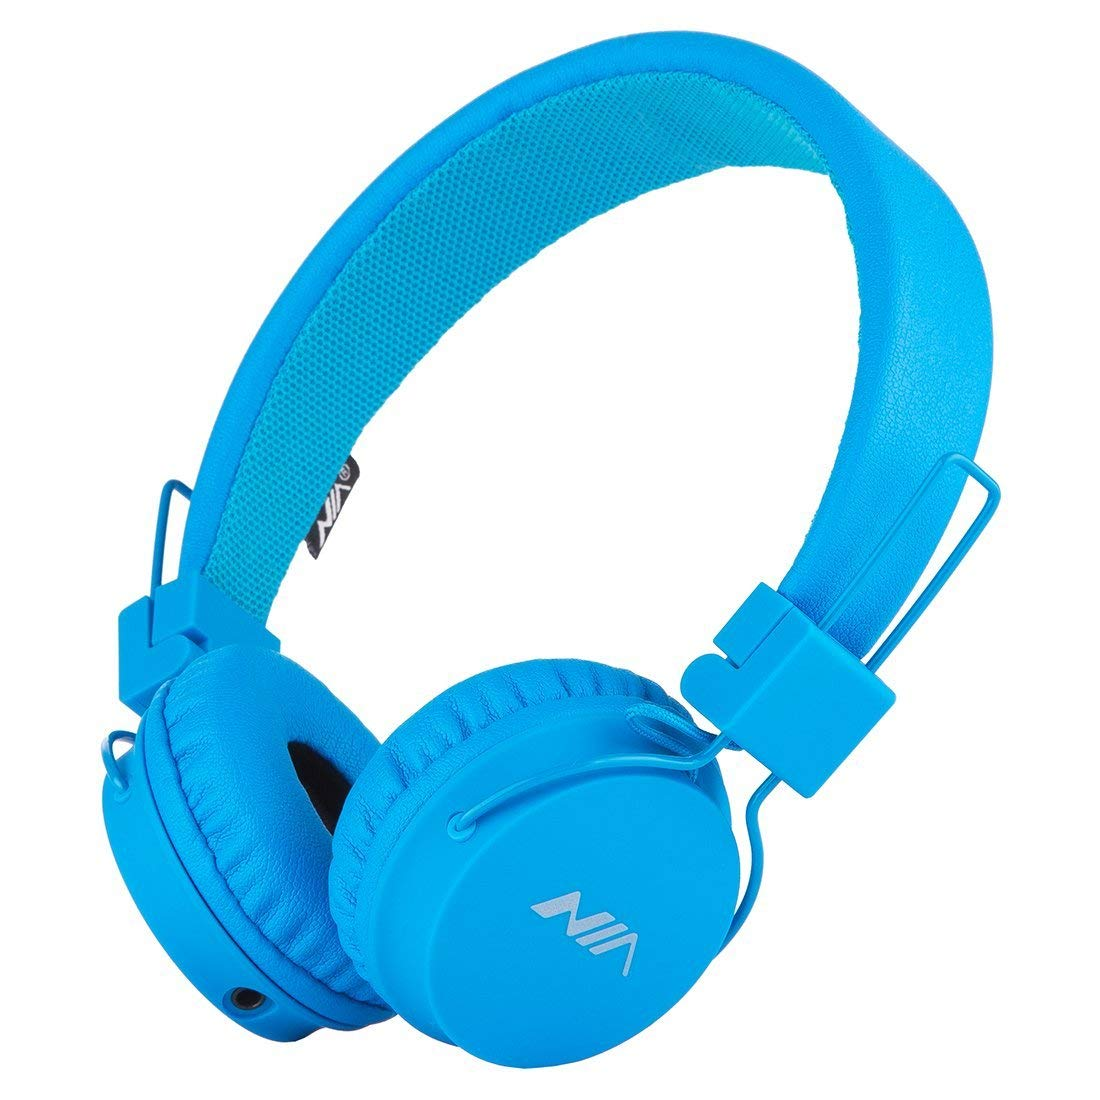 SODEE Folding Stereo Wired Headphones for Kids,Girls Headphones,Boys Headphone,in-line Microphone Remote Control Adjustable Over Ear Headphone Kids Headsets with Soft Earpads for Cellphones(Blue)